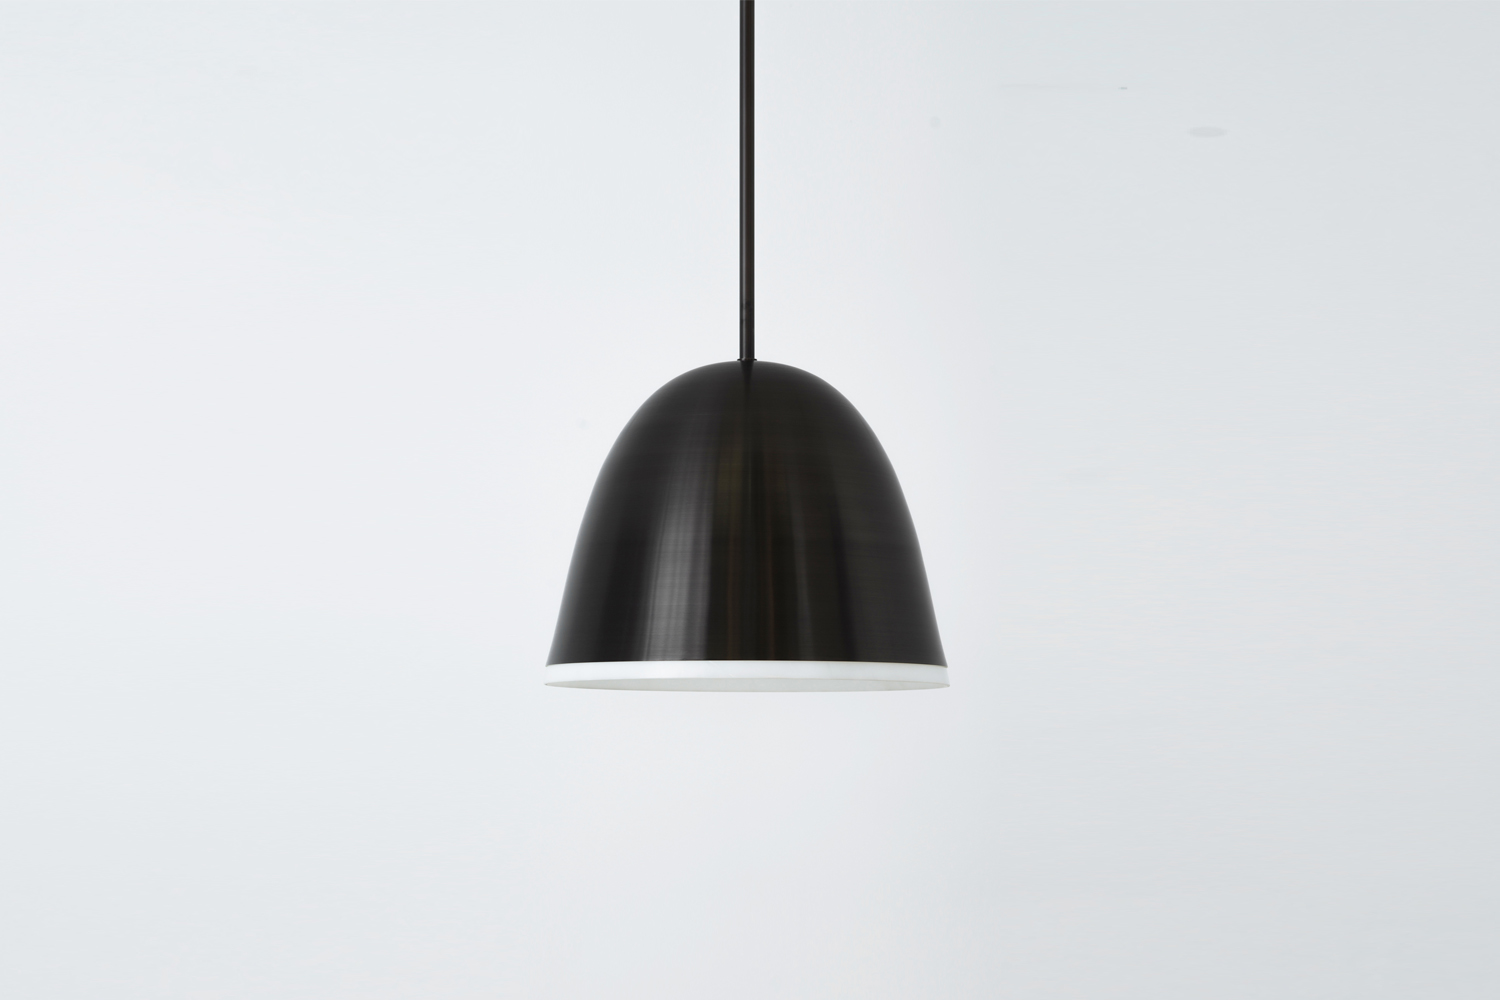 The Allied Maker Atelier Pendant -Inch Lamp in blackened brass and glass is $4,0.